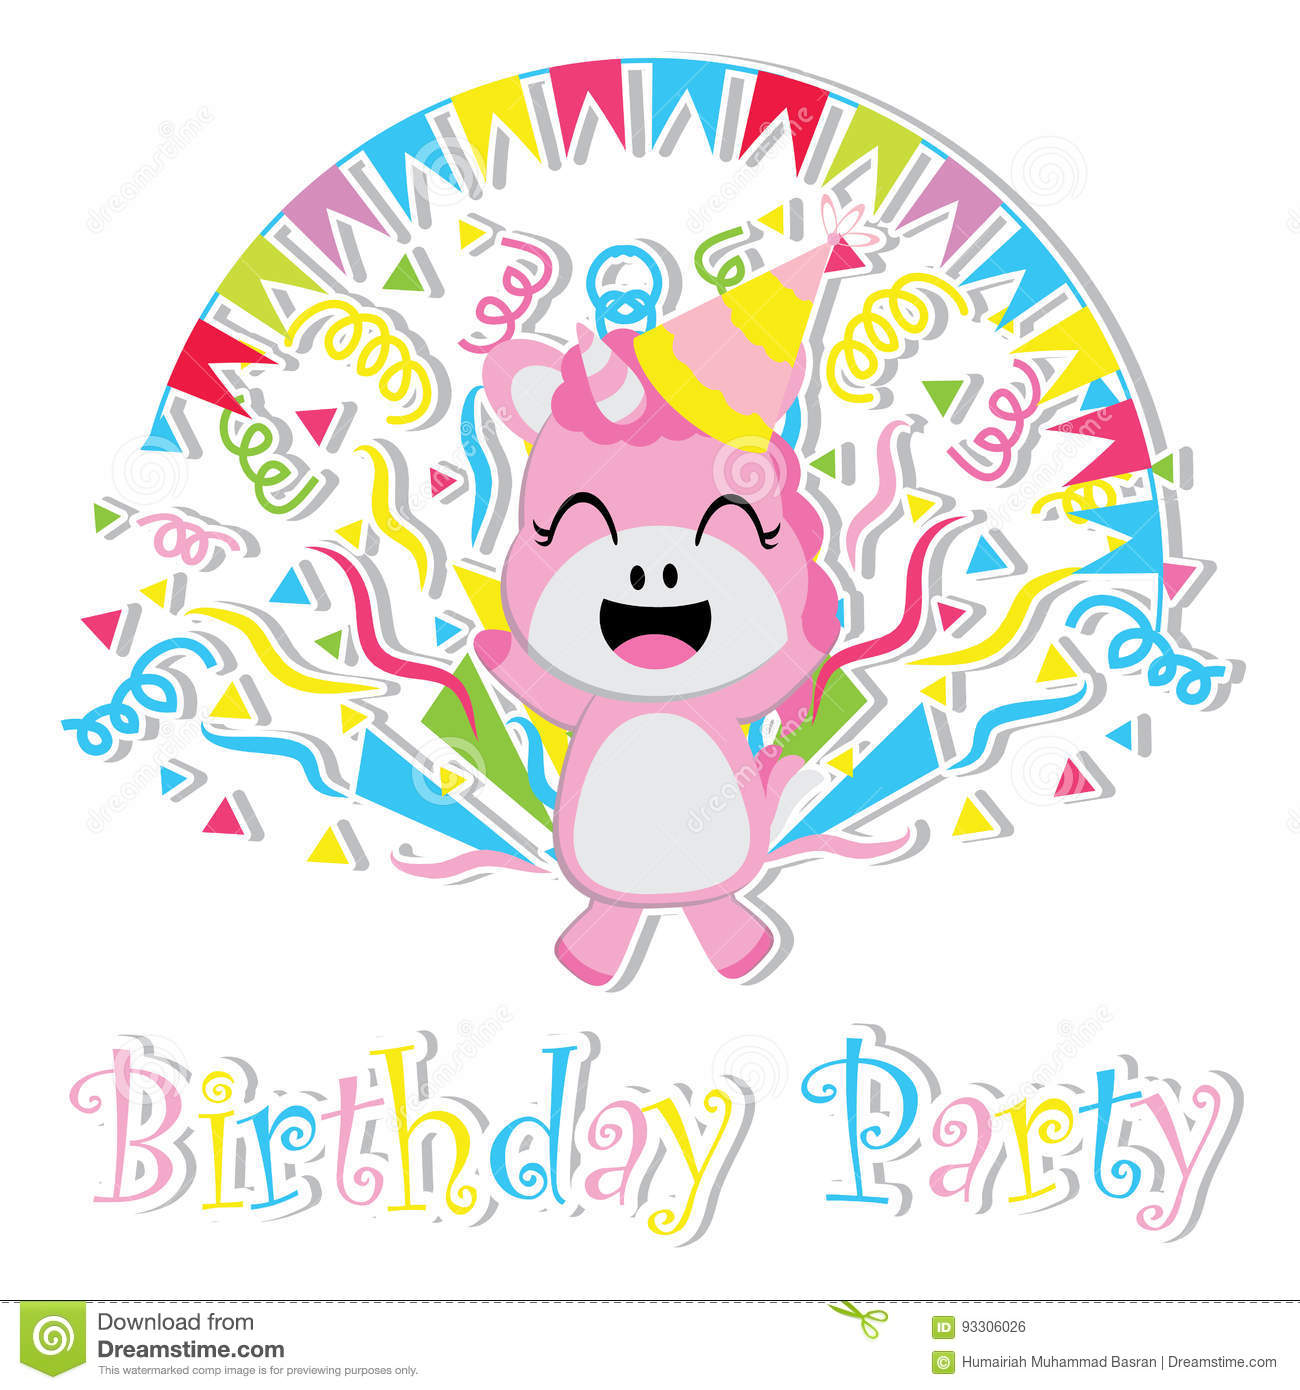 Cute Baby Unicorn Is Happy Cartoon Birthday Postcard Wallpaper And Greeting Card T Shirt Design For Kids